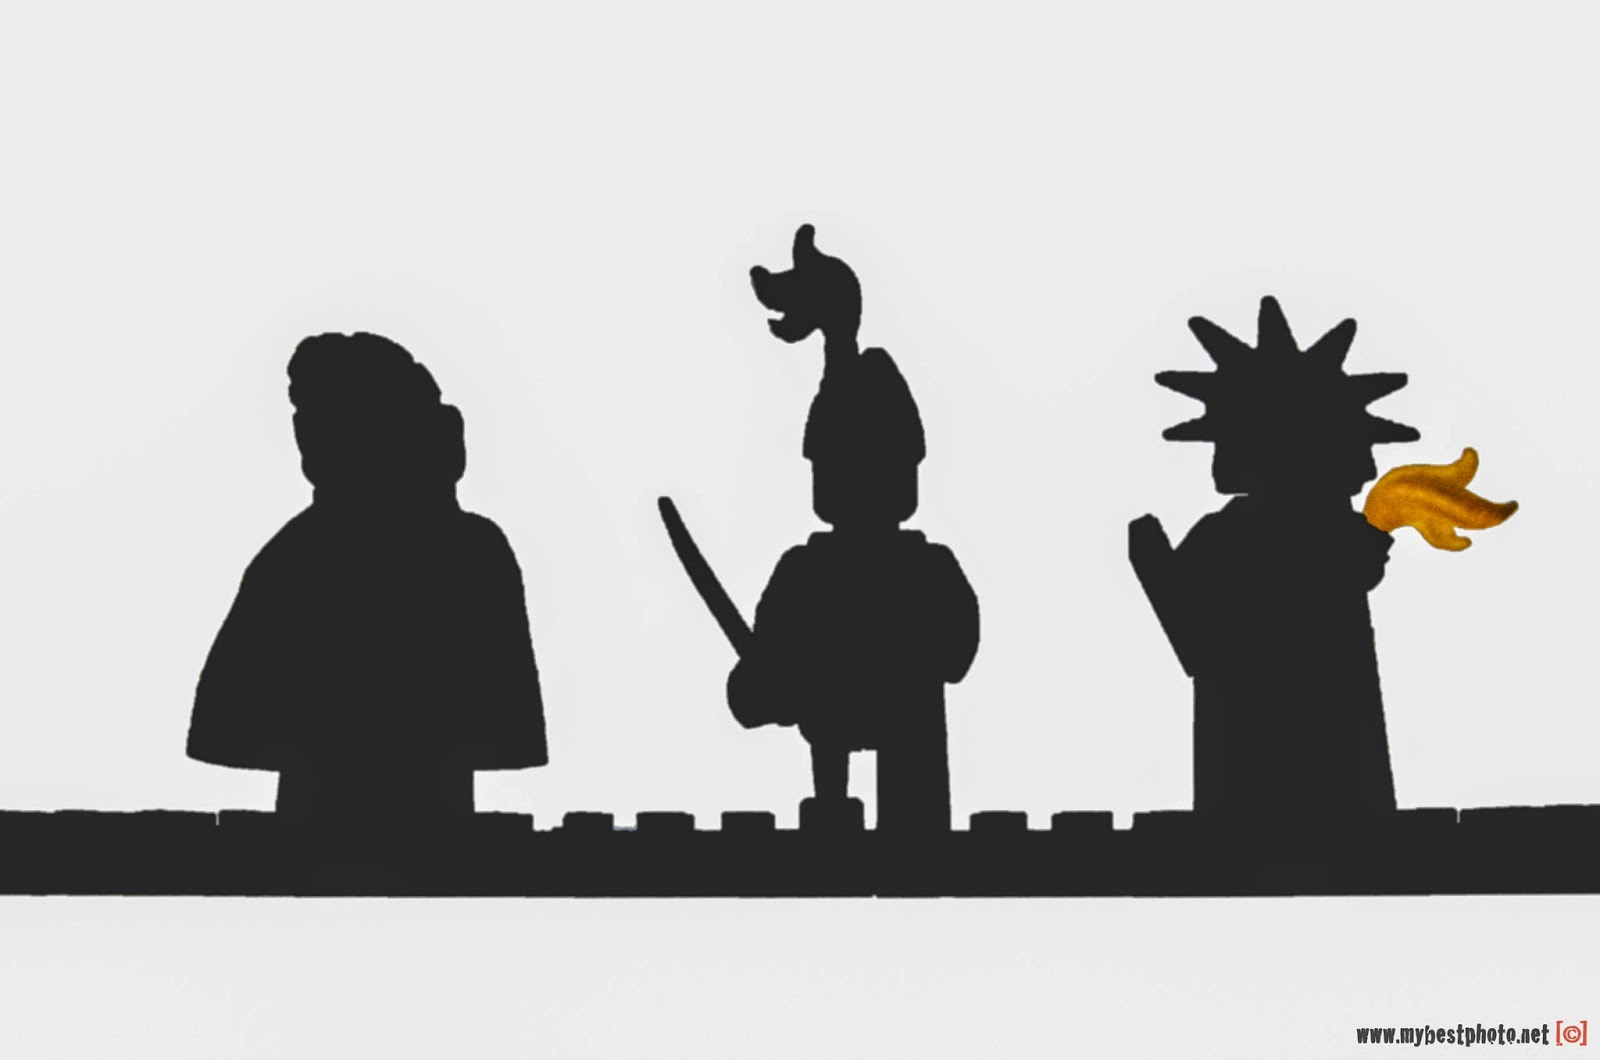 Lego Minifigure Series Silhouette - Wallpaper